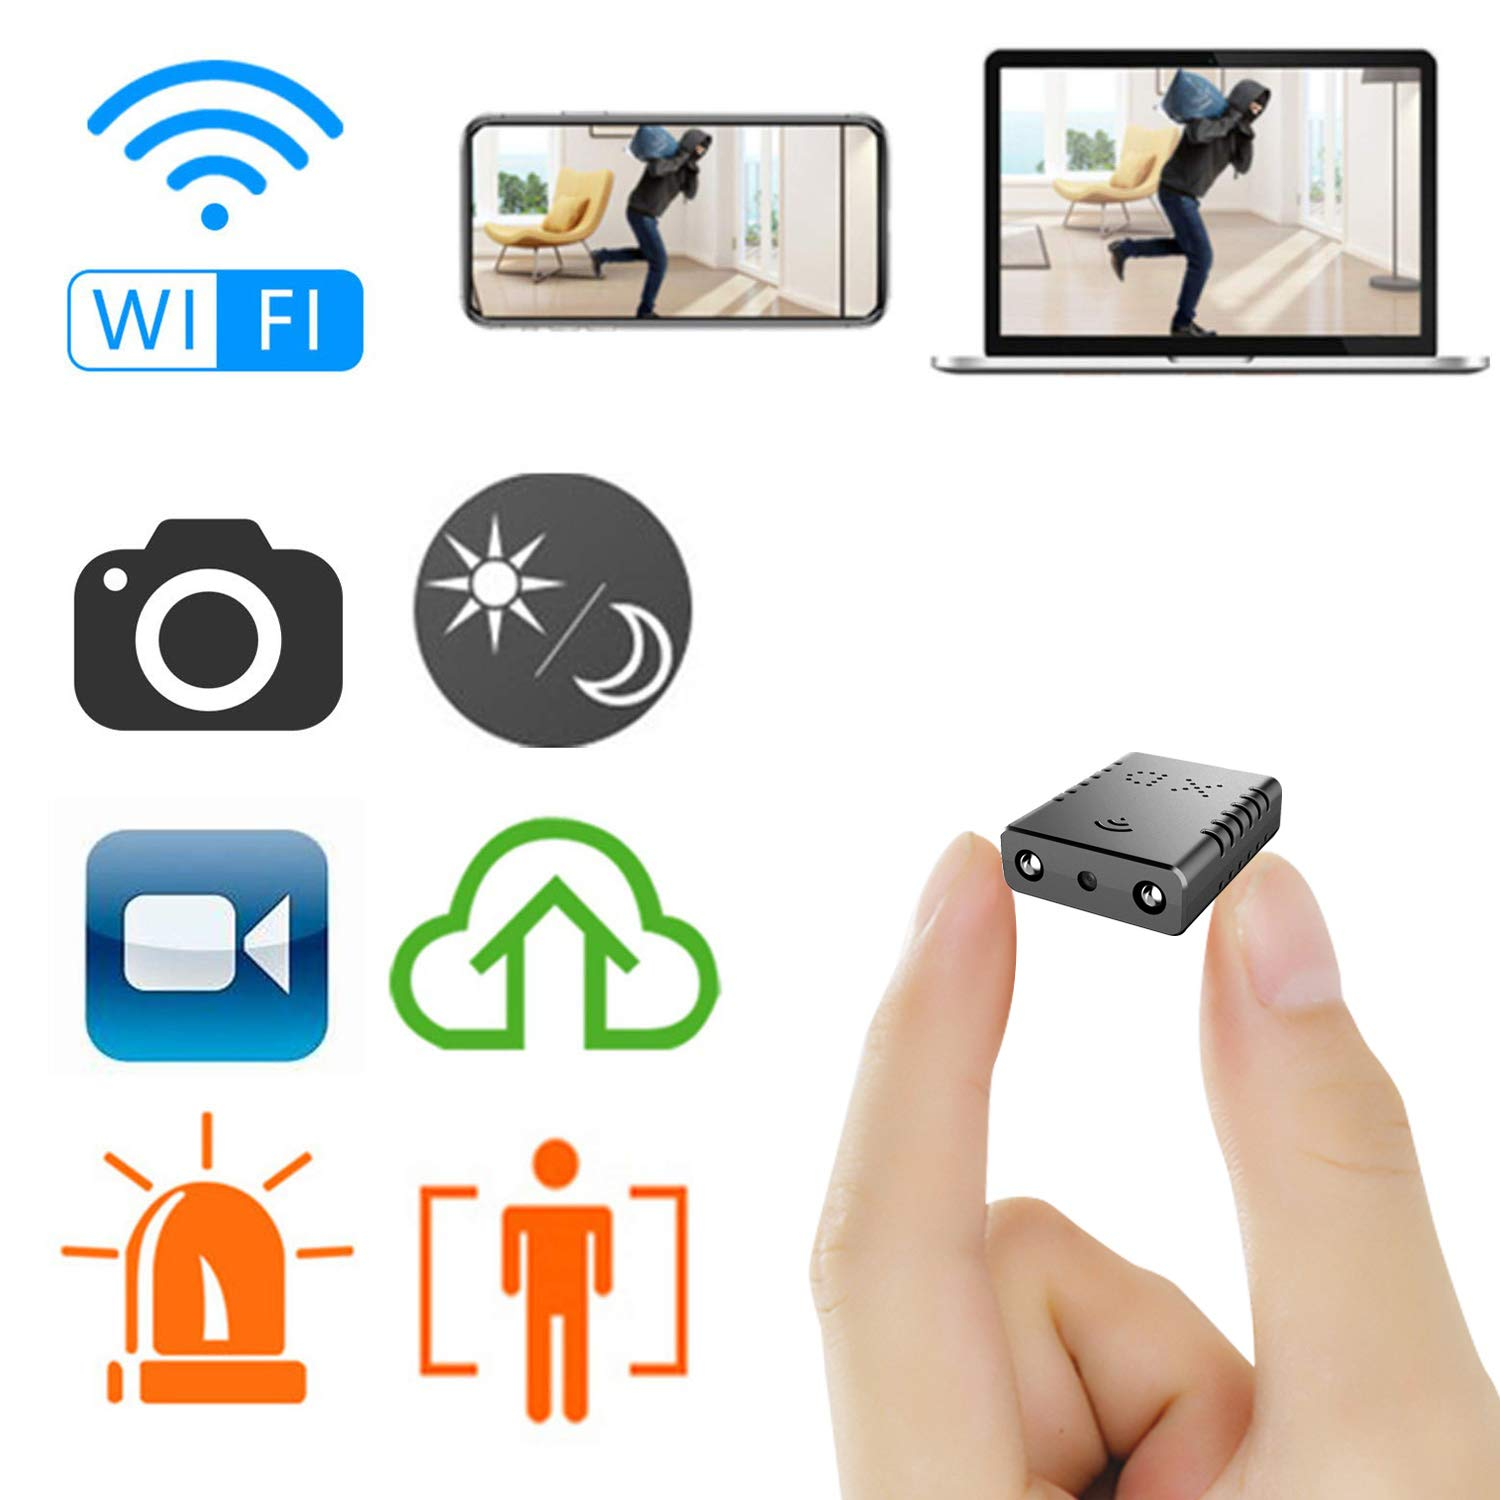 Mini Spy Camera WiFi, Rettru HD Small Camera with Remote Viewing Wireless Hidden Live Streaming, Upgraded Night Vision/Motion Activated Spy Cam Nanny Cam, Phone App with Andriod and iOS